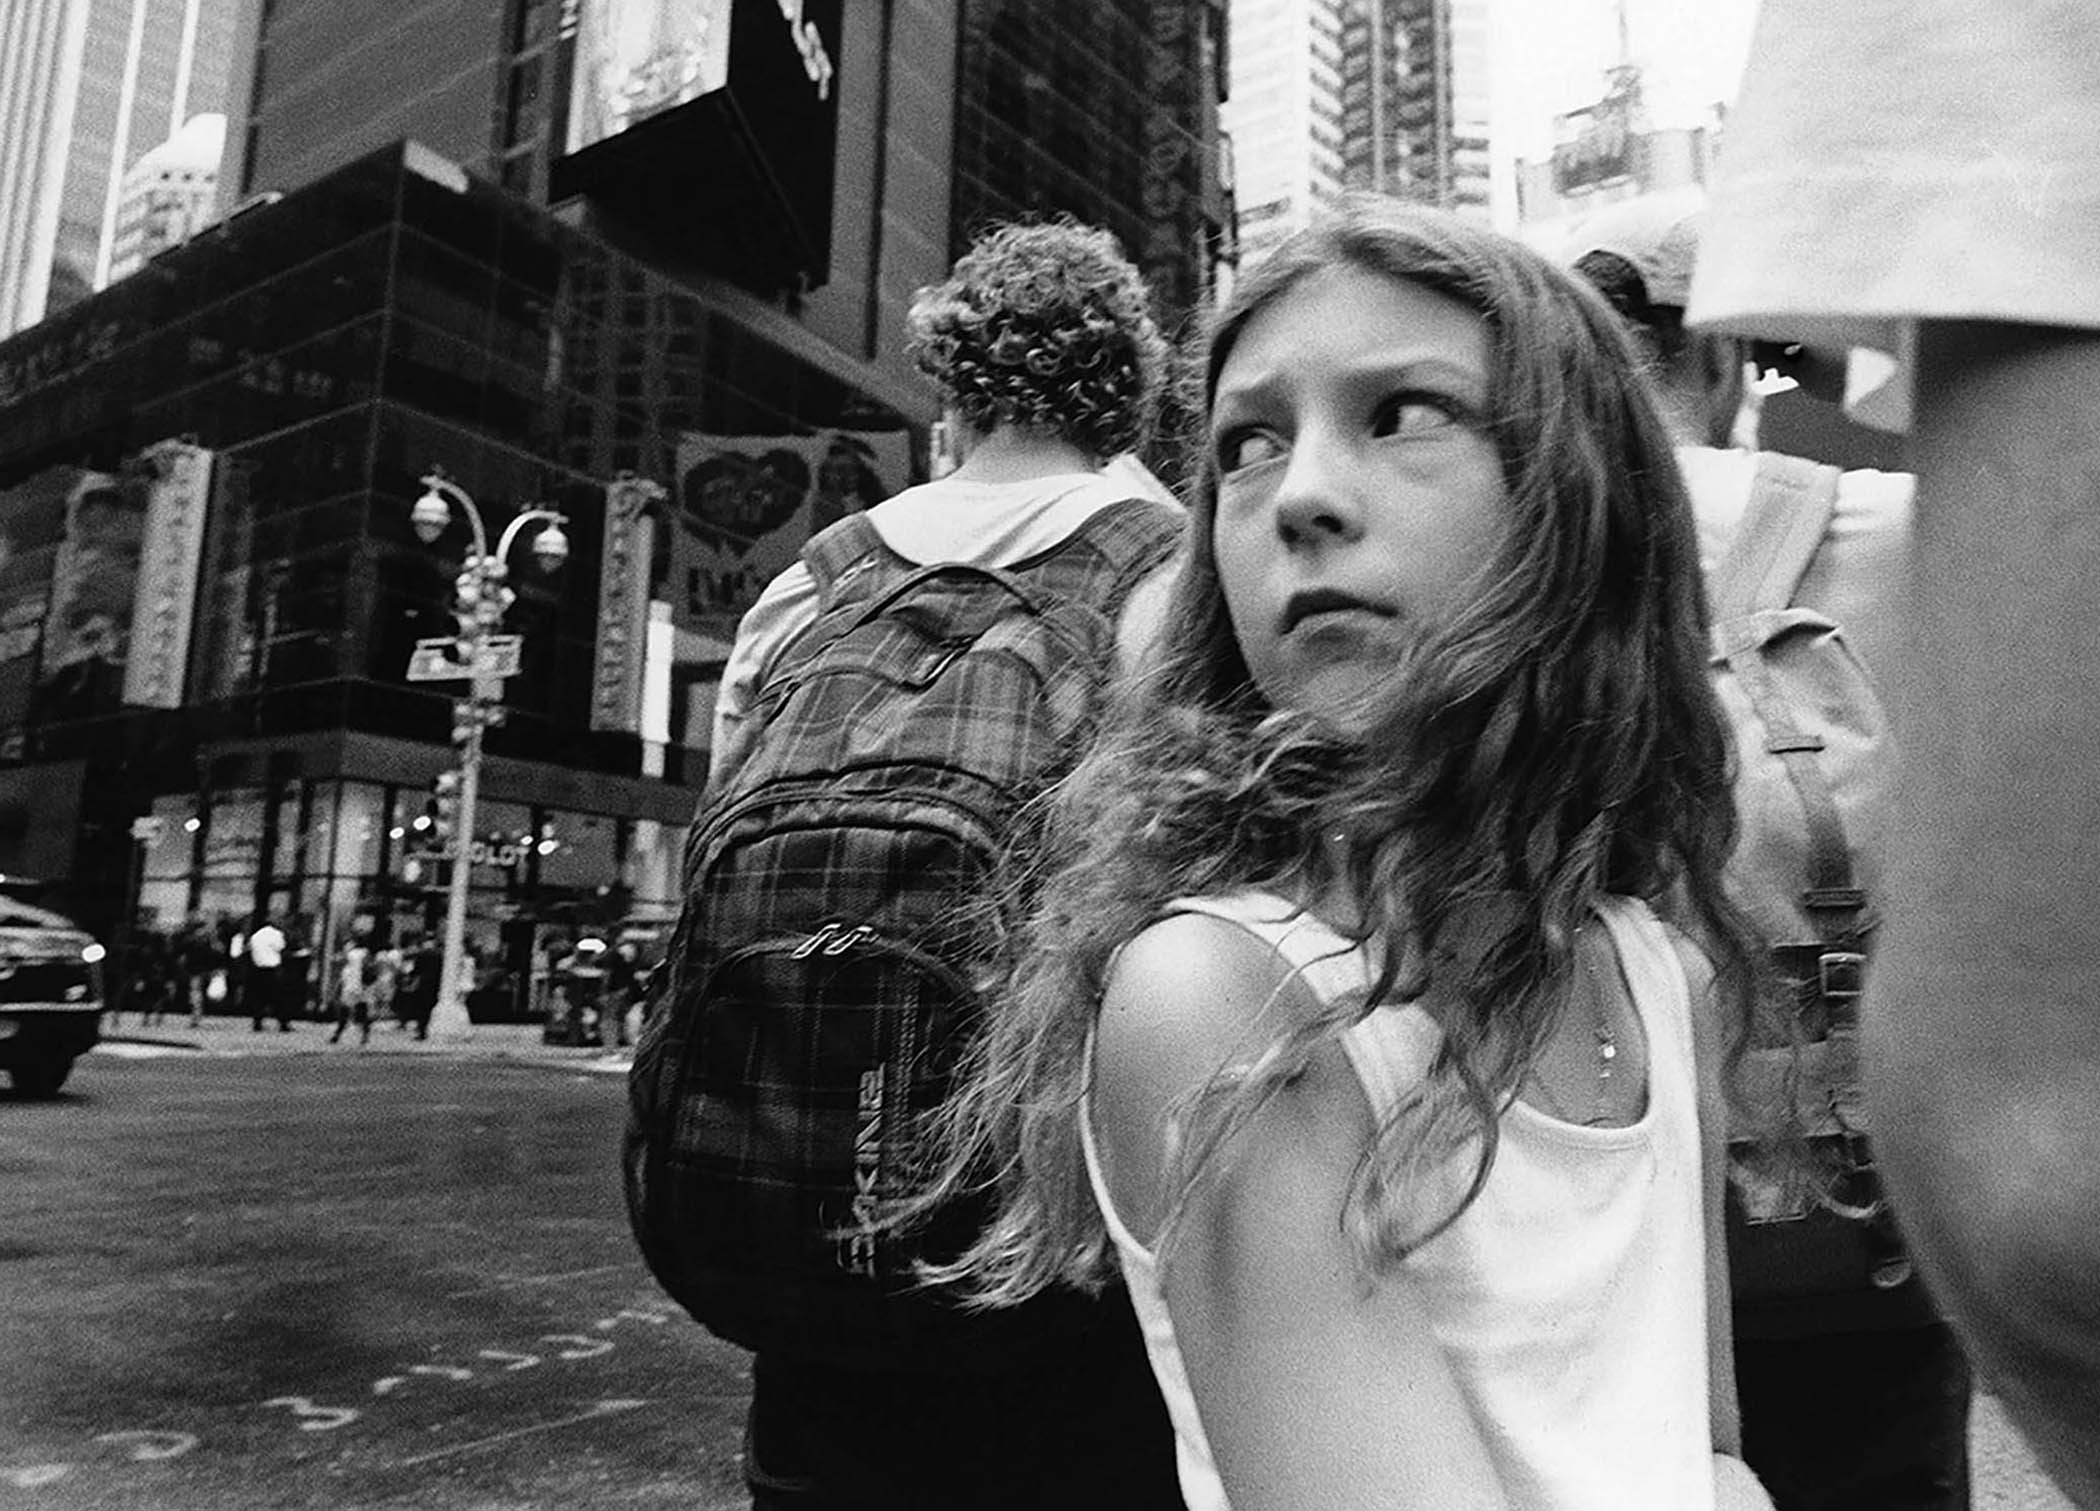 Girl Near Times Square, New York, NY, 2015